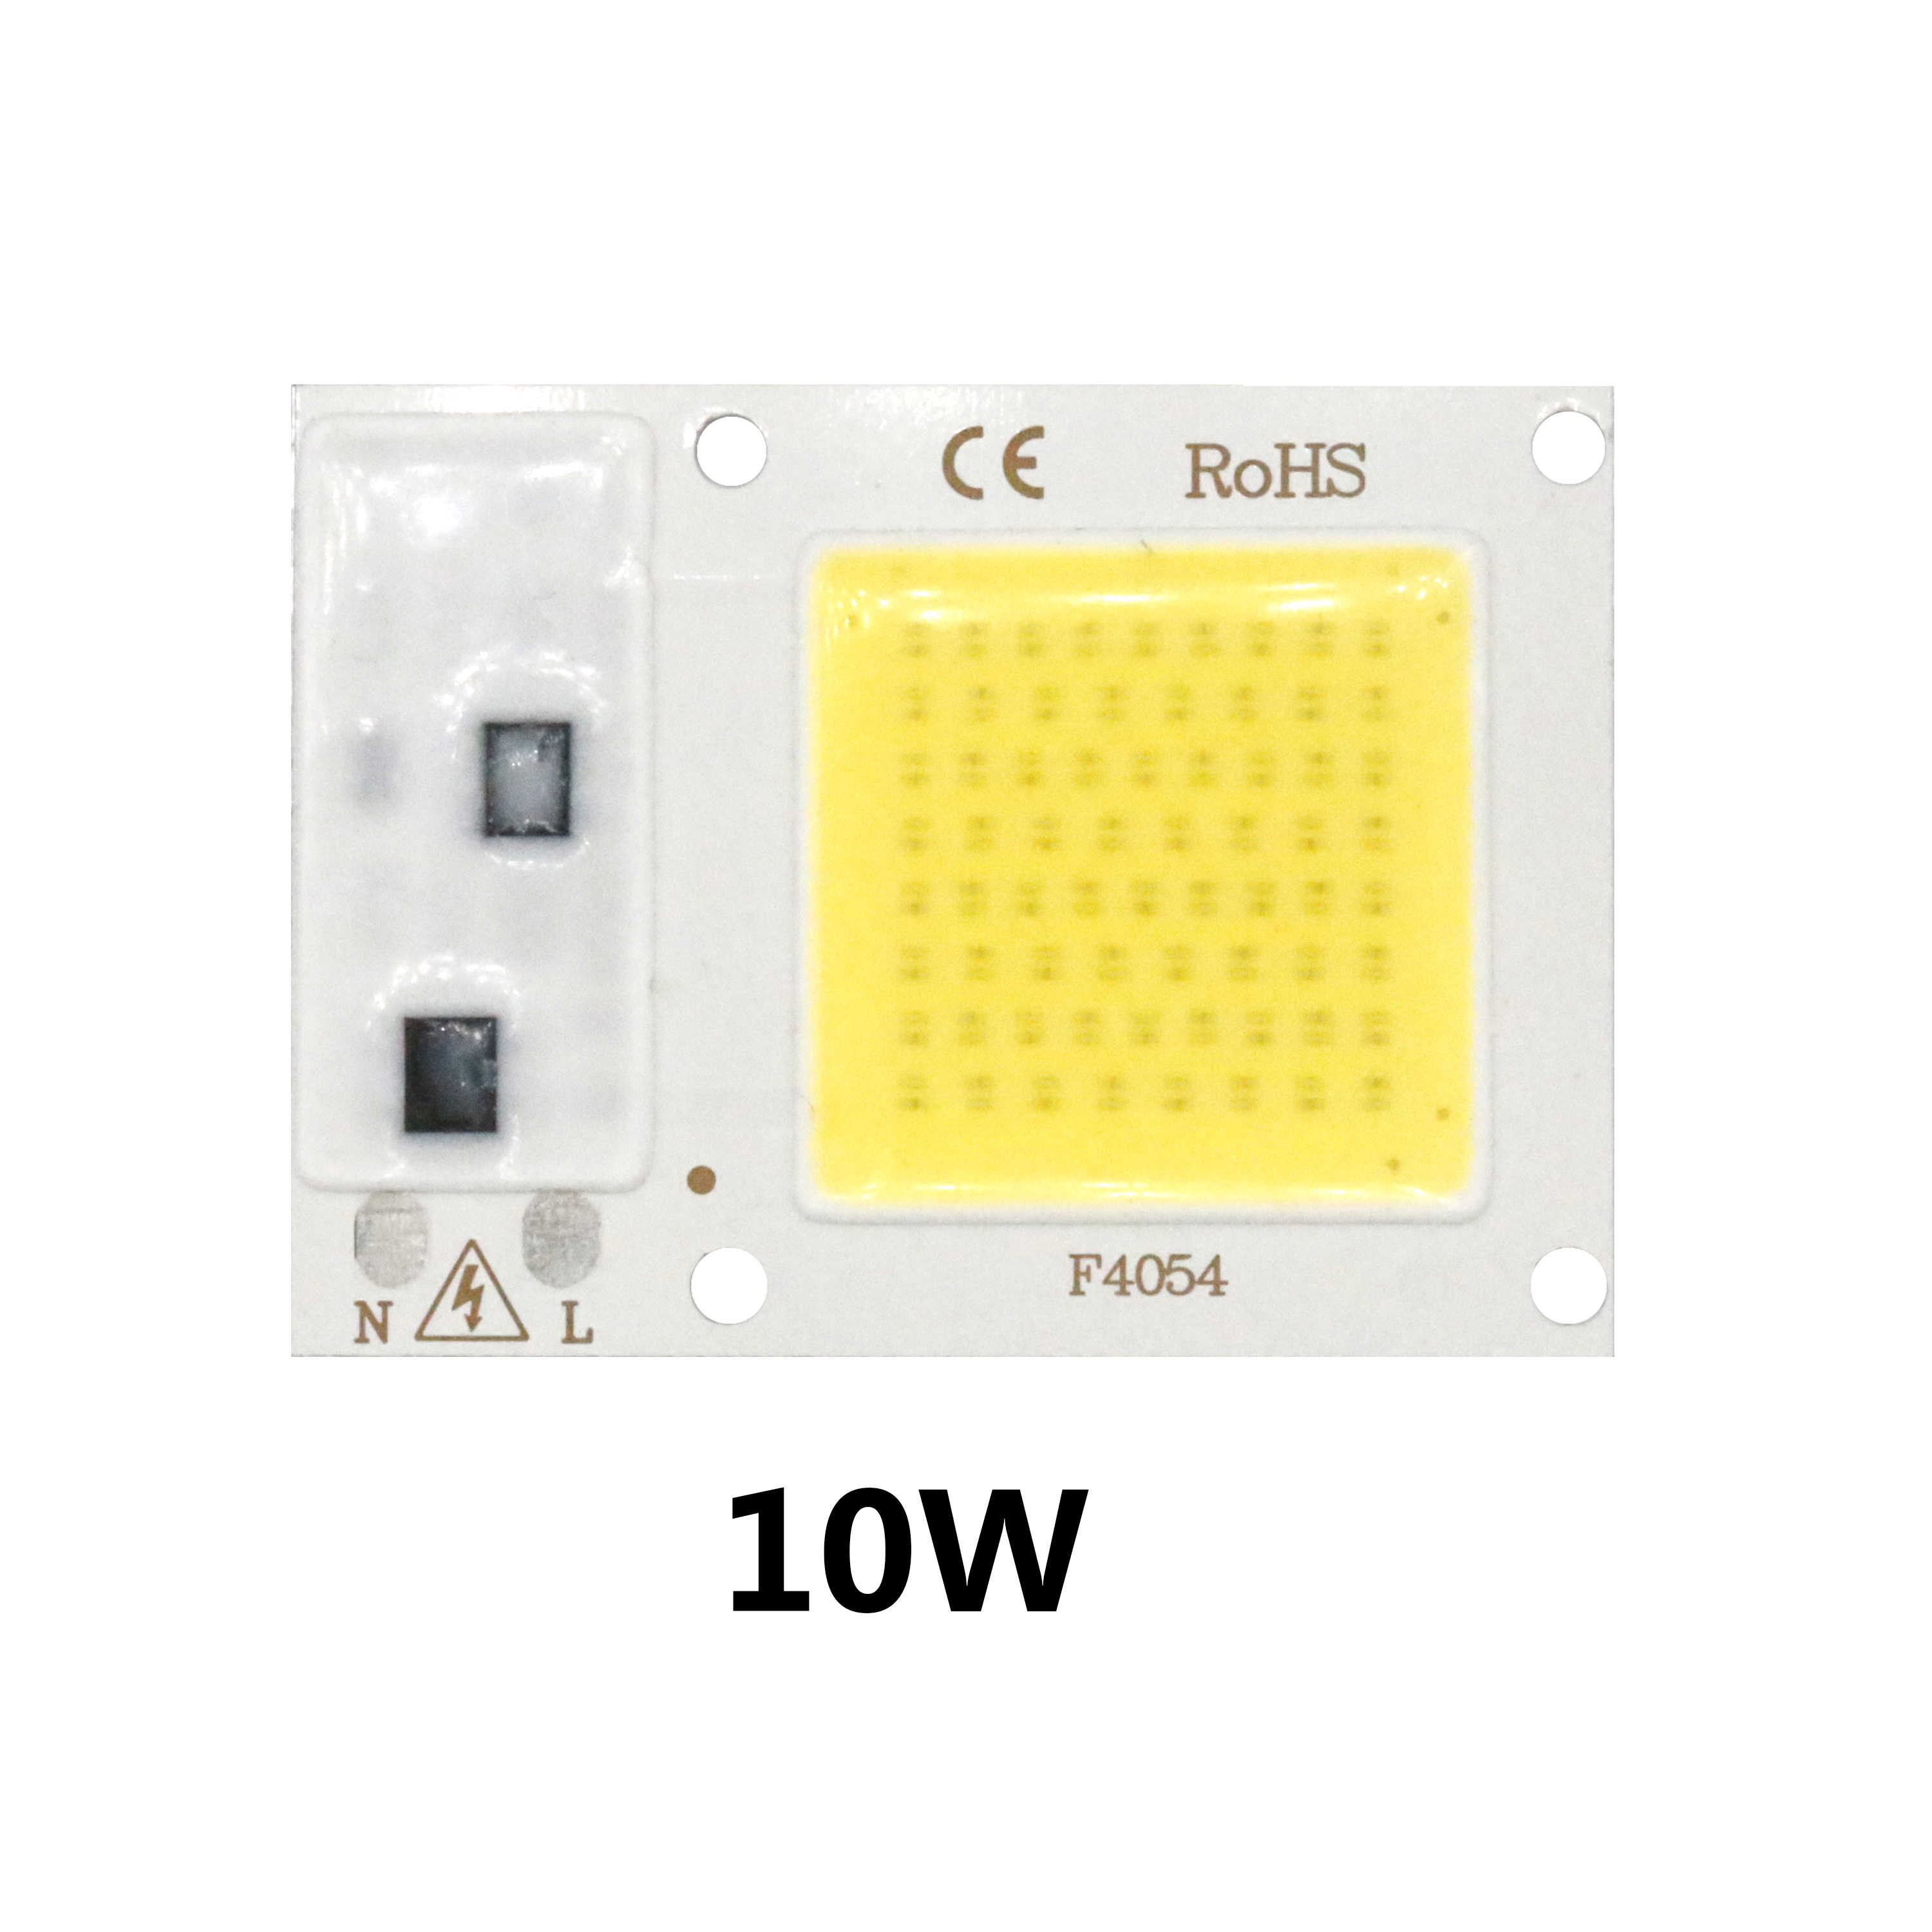 High Power 220V 5w 10w 20w 30w 50w LED Bulb COB Chip White High Lumen Lamp For Outdoor Indoor FloodLight For DIY LED